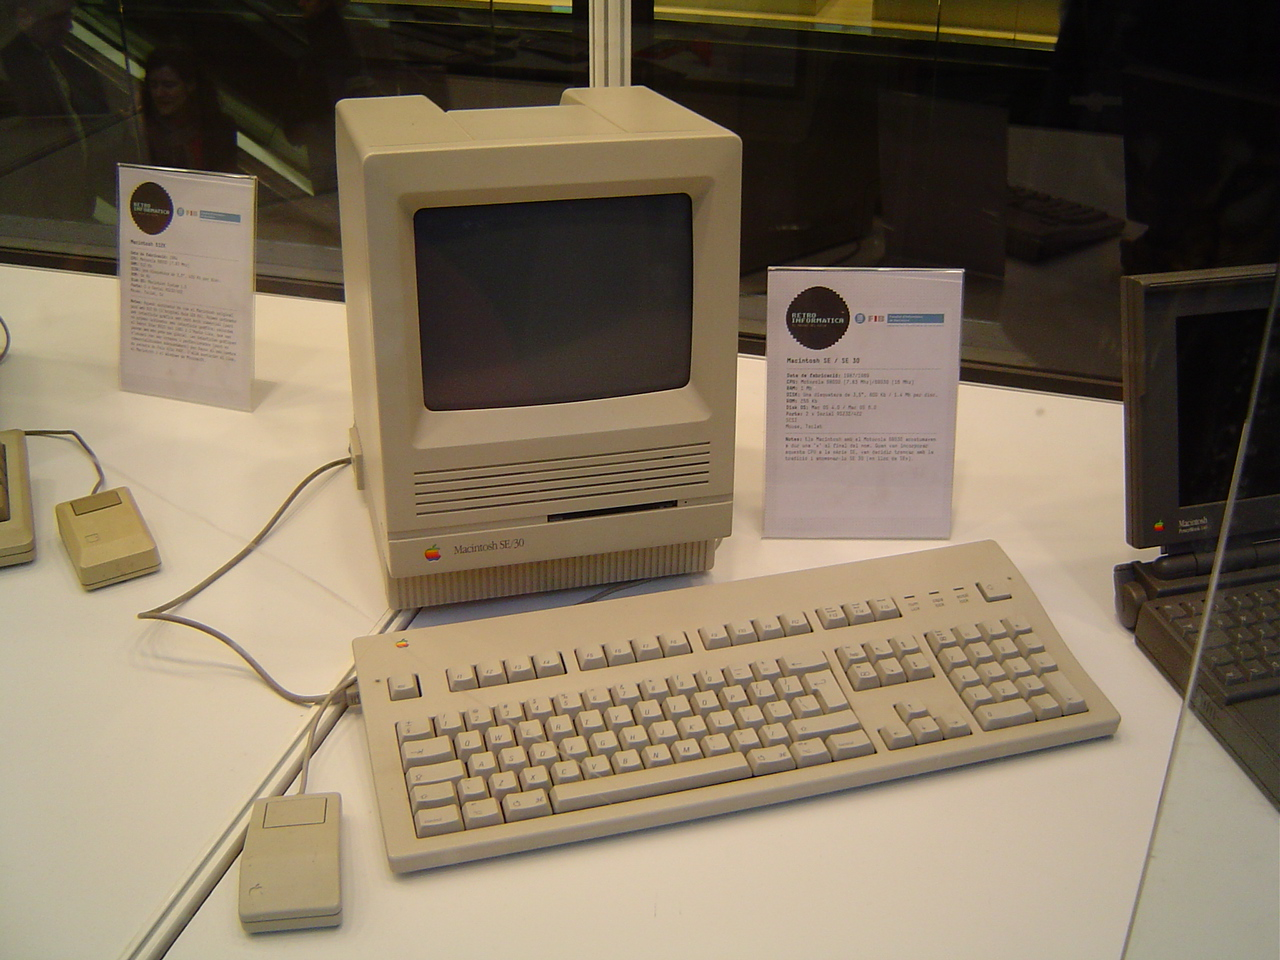 File:Old computer 1.jpg - Wikimedia Commons